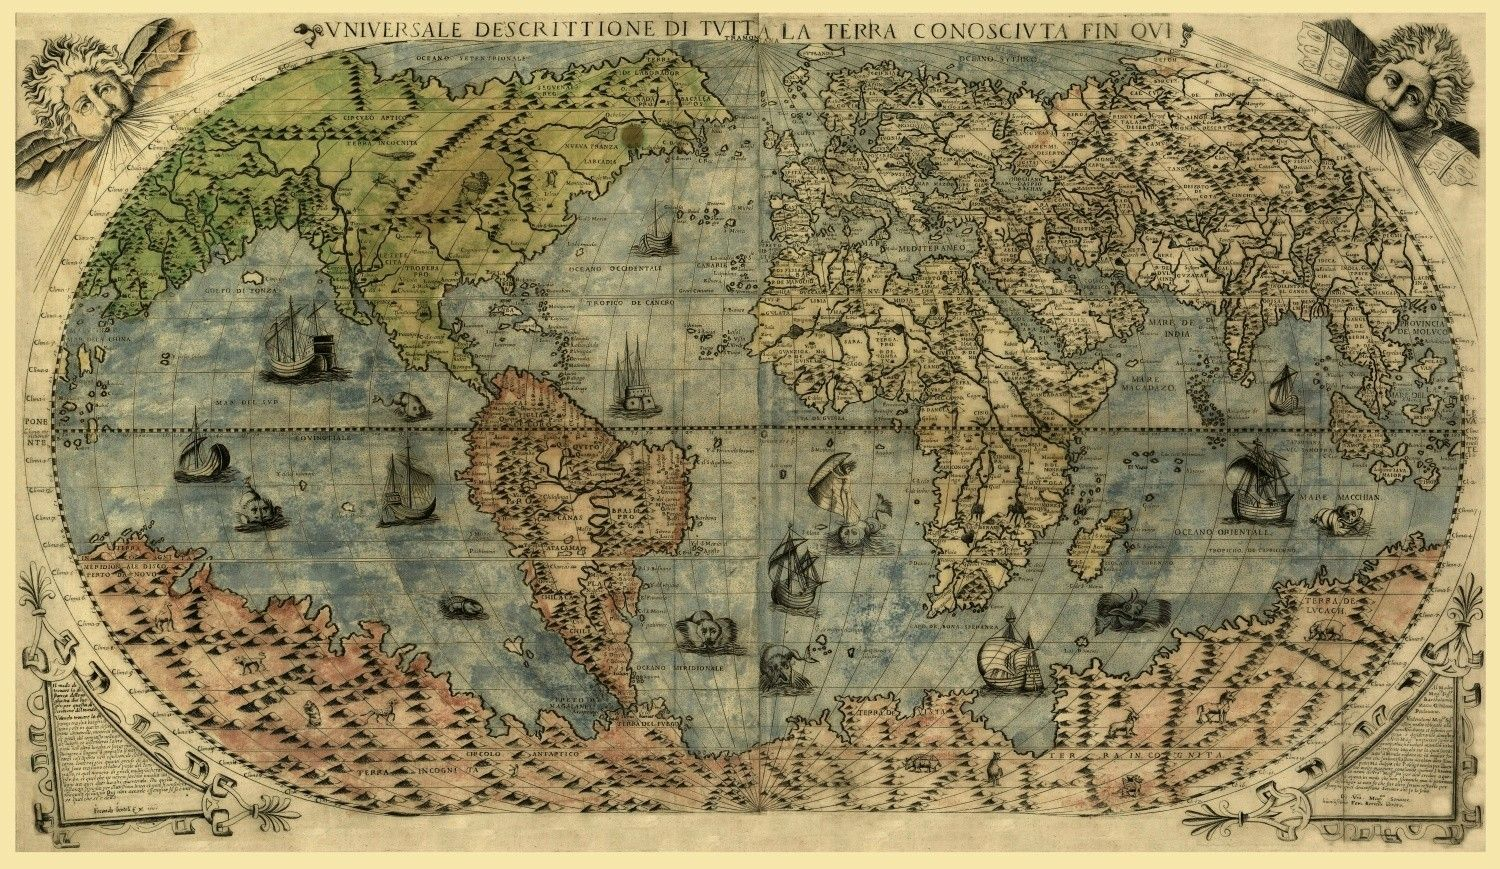 1500's world map | Old maps | Pinterest | Old maps, Map and Old